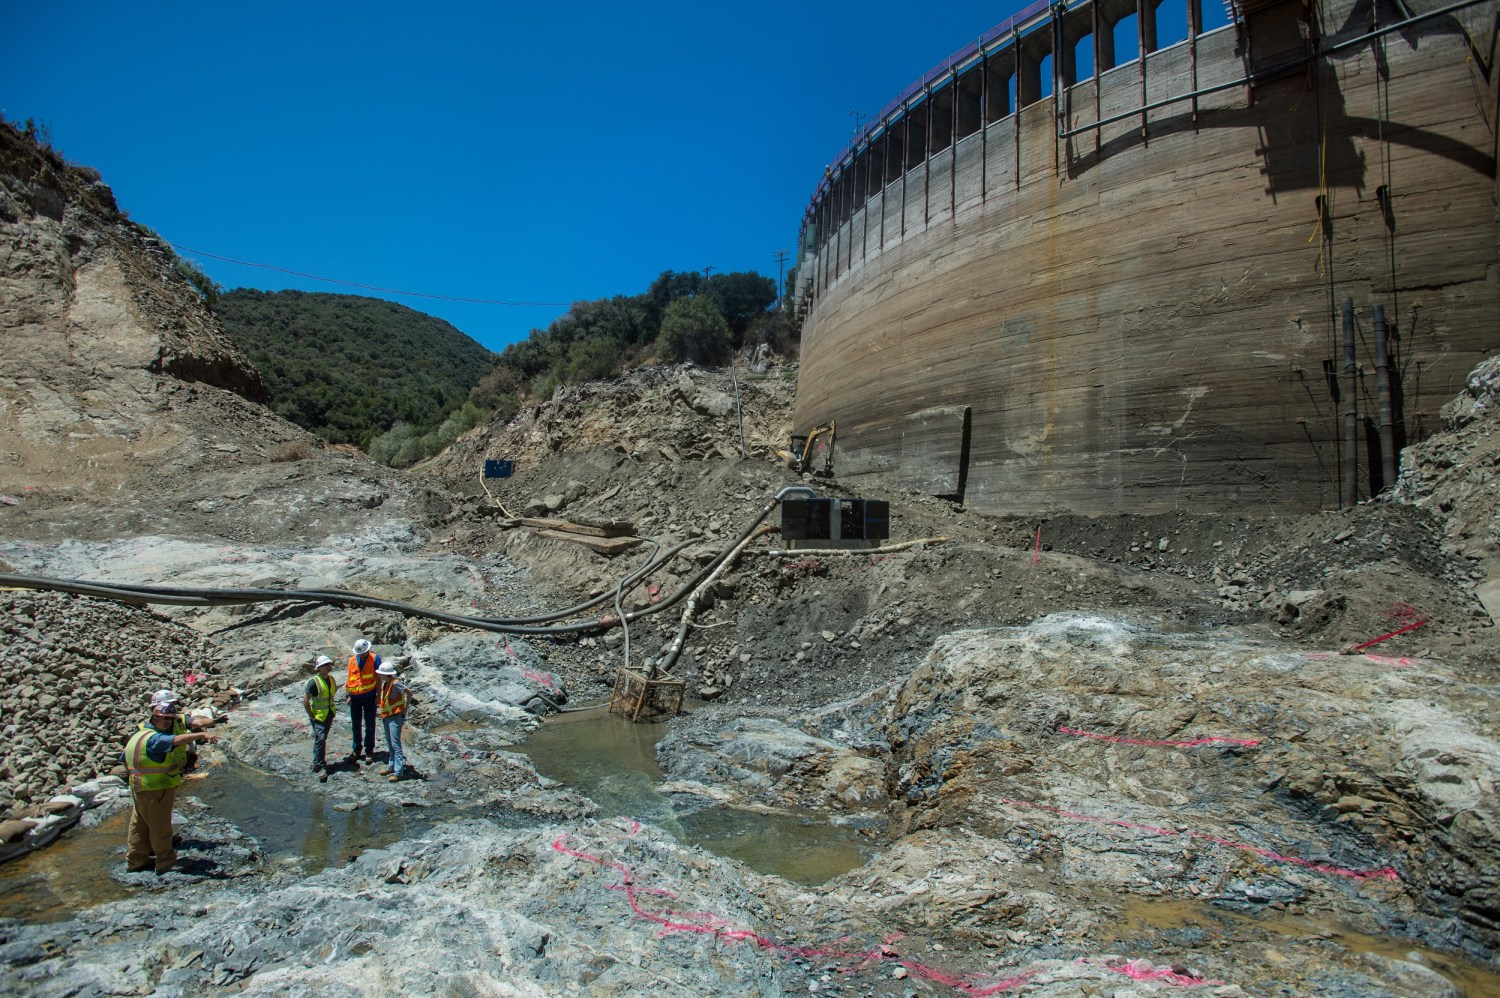 In 2015, California tore down the 106-foot-high San Clemente Dam on the Carmel River because the dam was at risk of collapsing in an earthquake. Photo by Kelly Grow / California Department of Water Resources